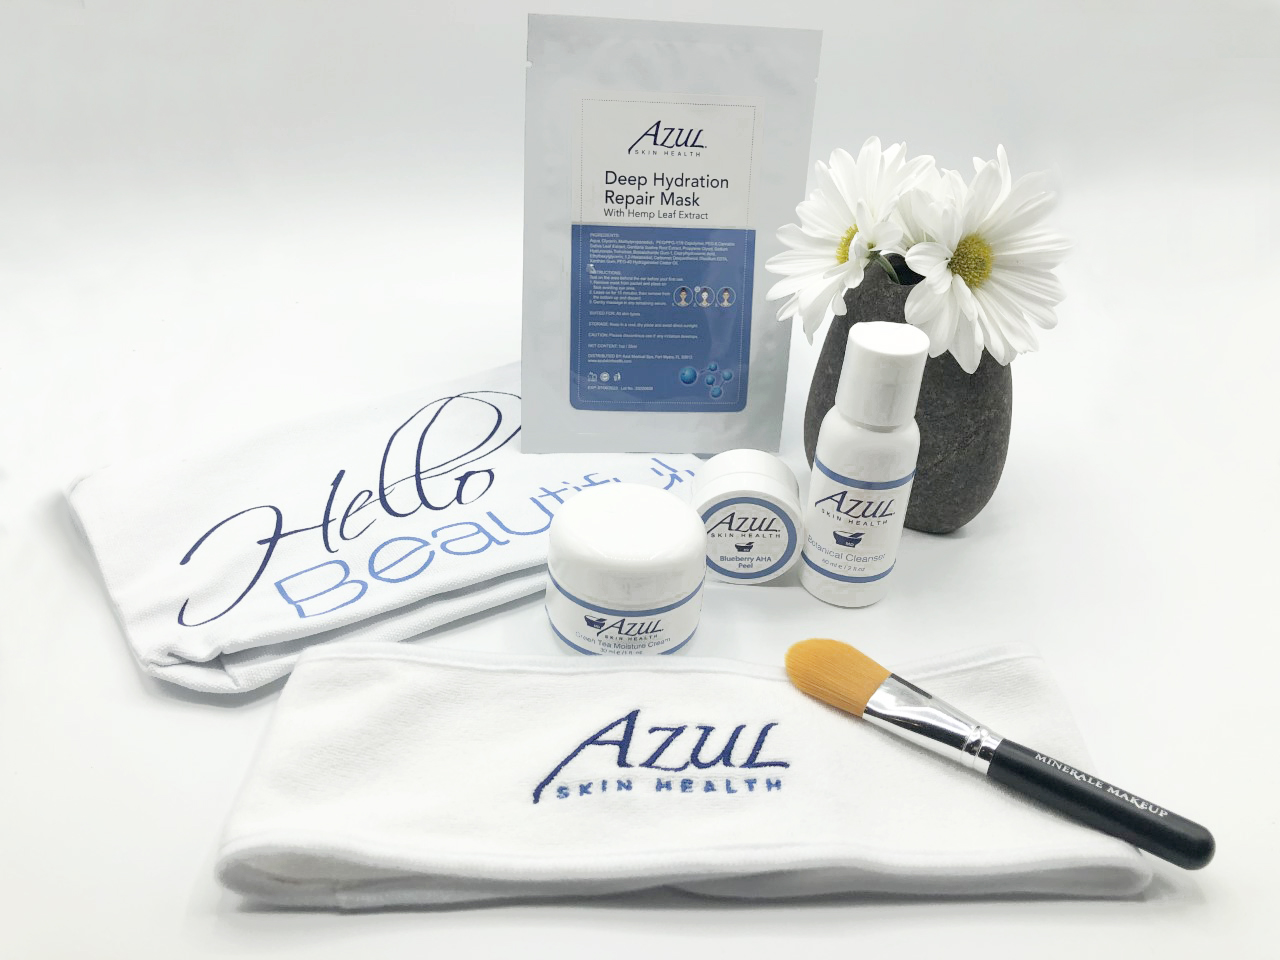 Exclusive hair restoration treatment now available at Azul Cosmetic Surgery and Medical Spa